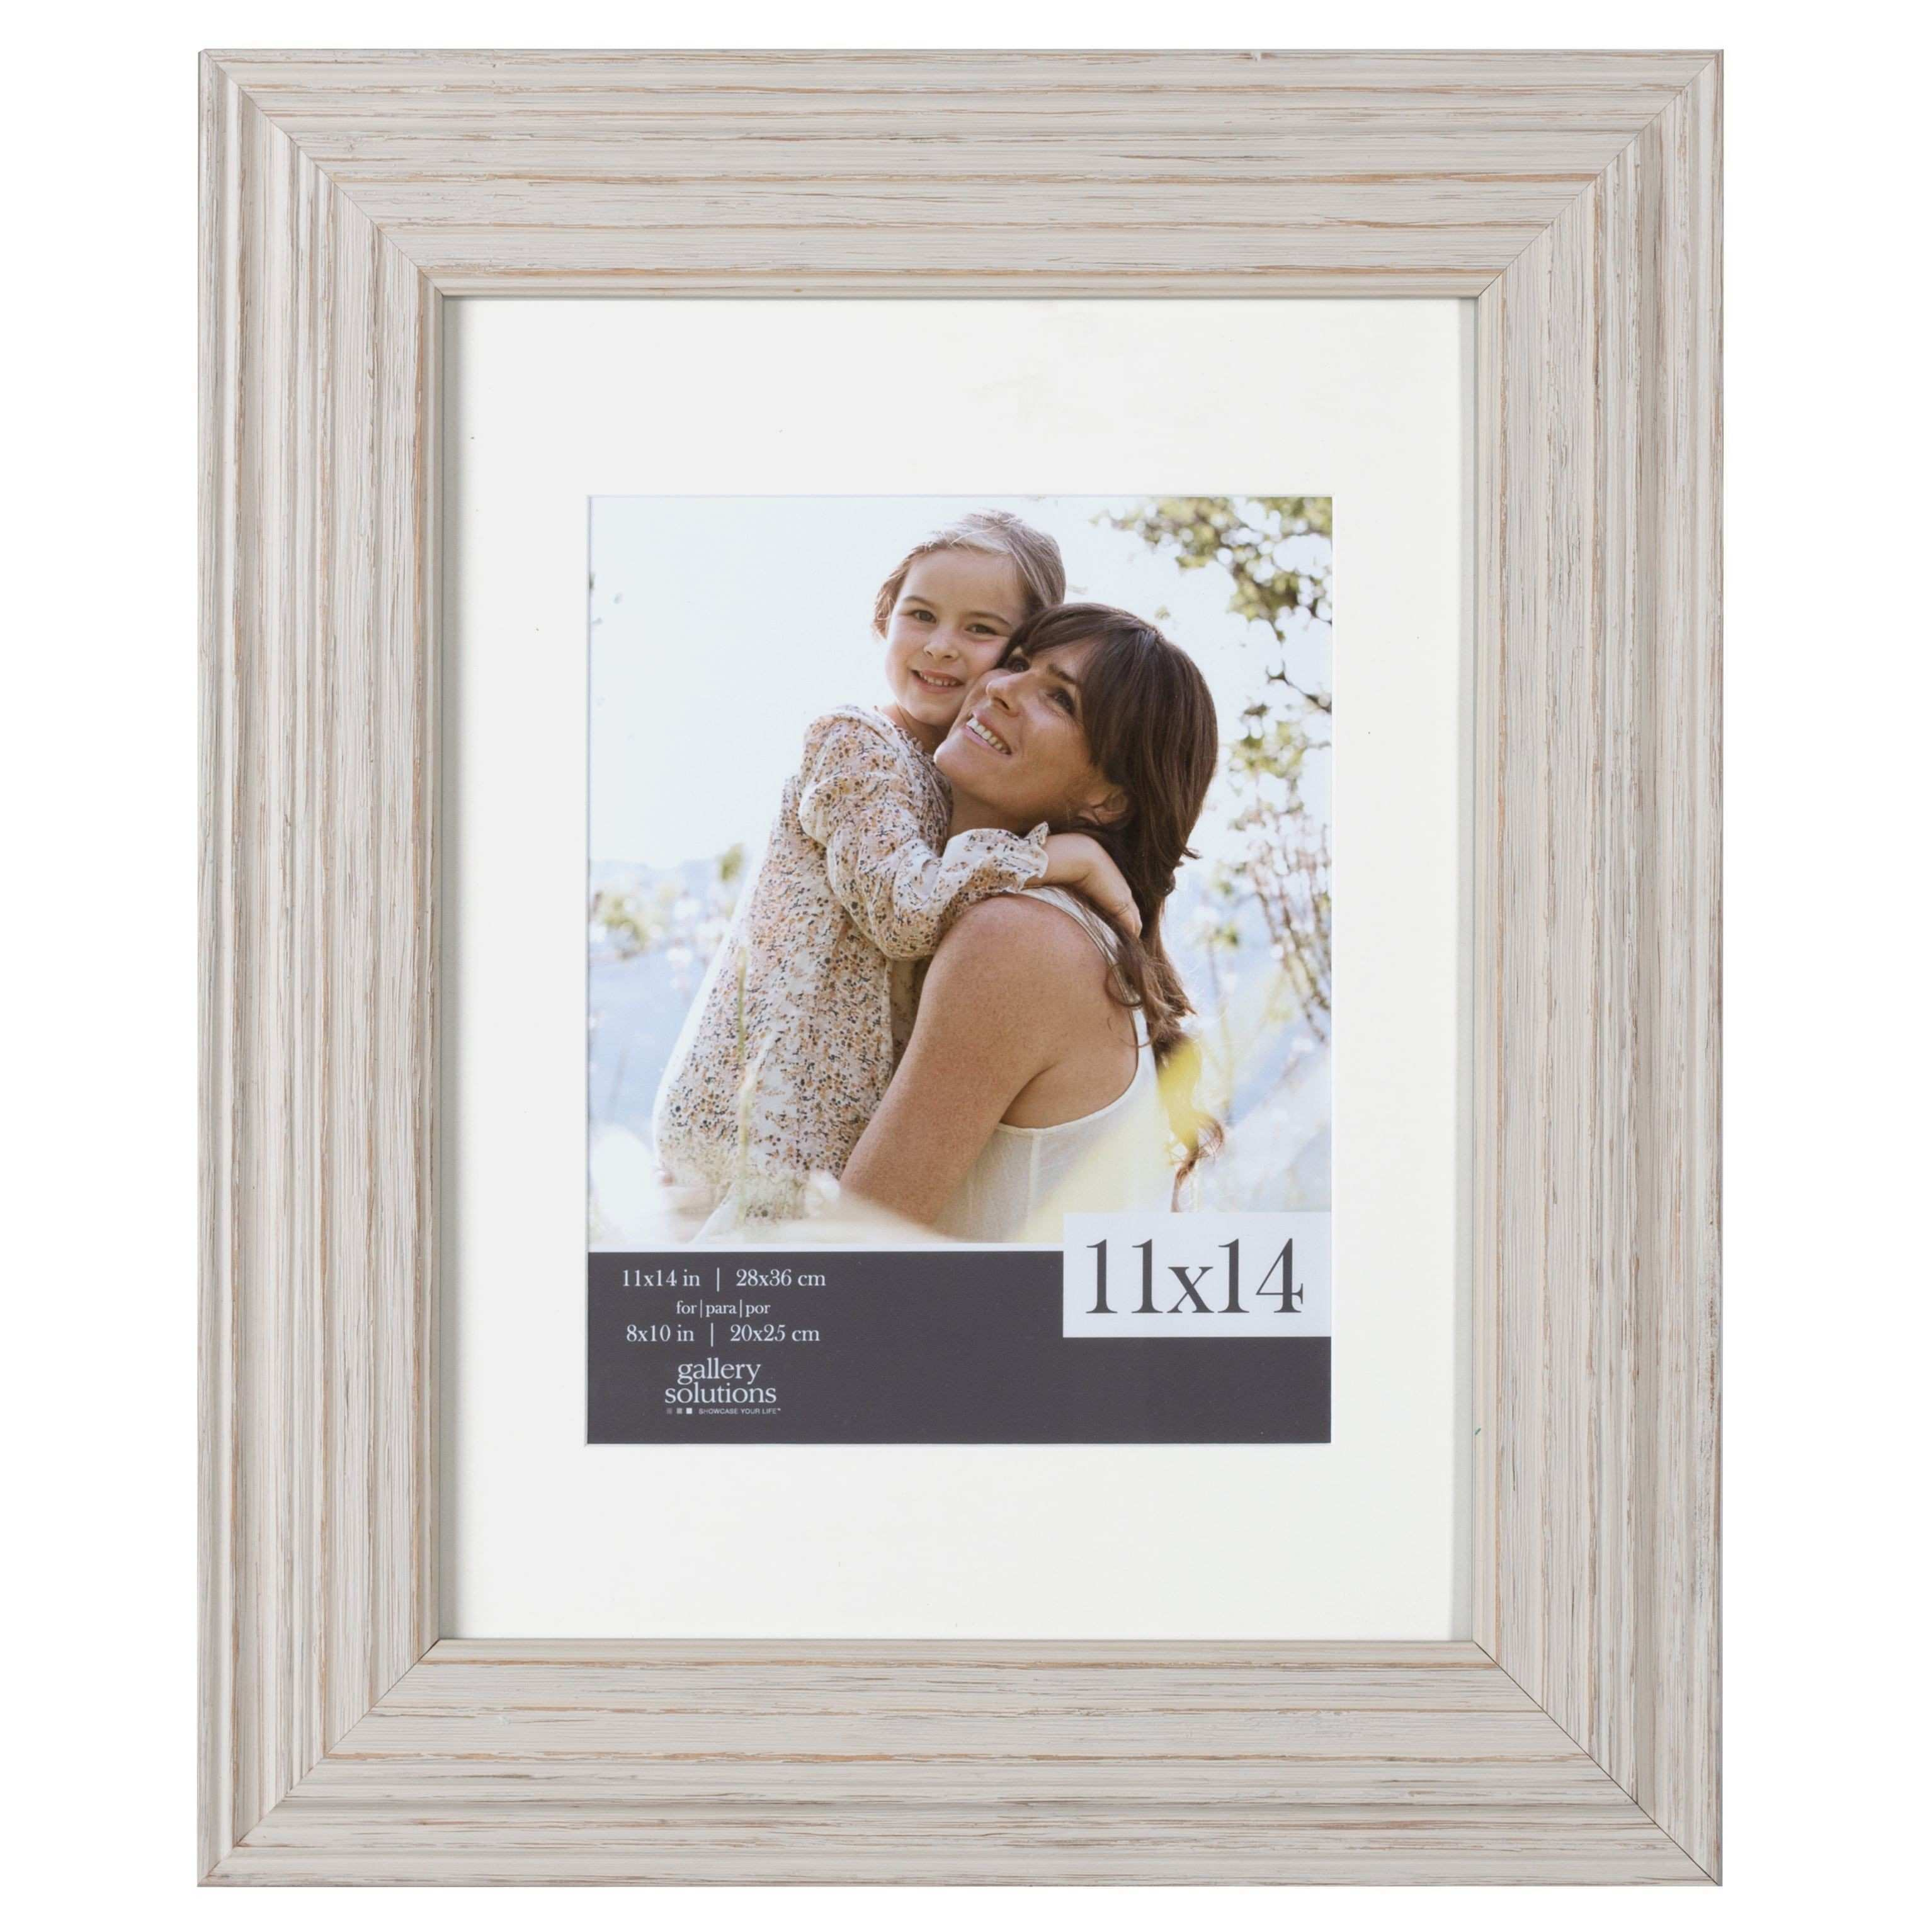 Whitewashed Wood Wide Matted Gallery Frame 8x10 White